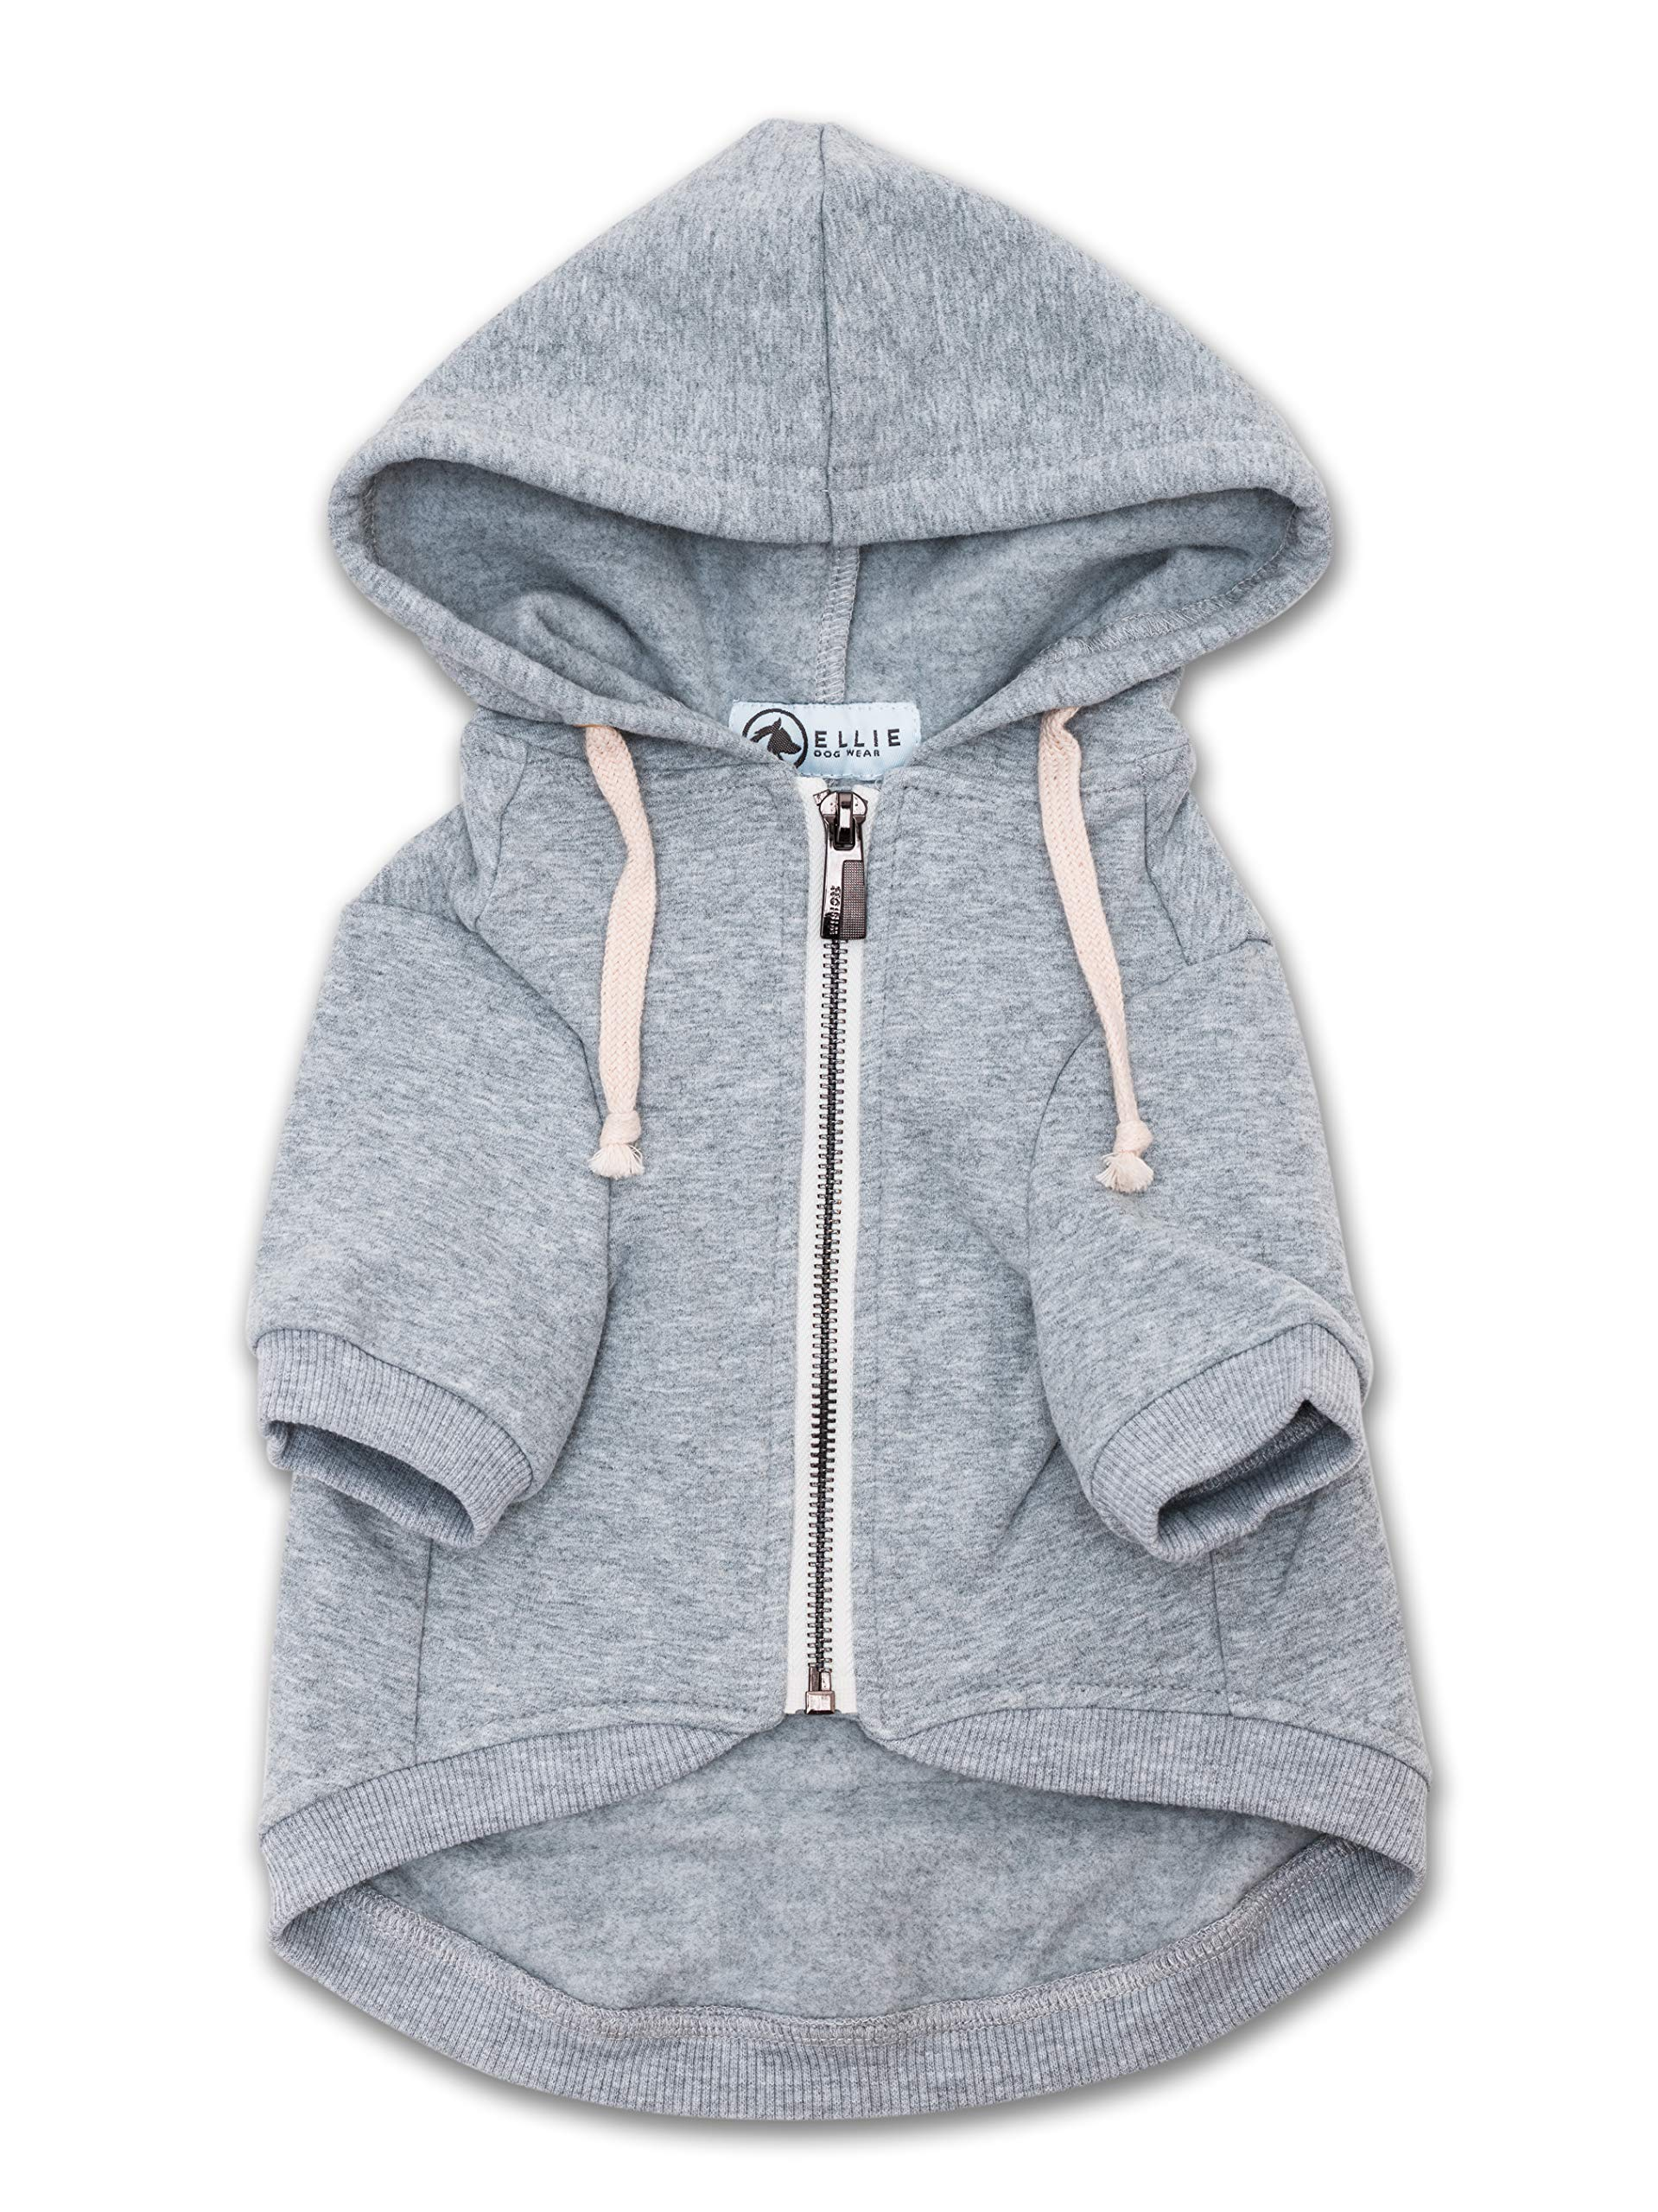 Ellie Dog Wear Zip Up Adventure Light Grey Dog Hoodie with Hook & Loop Pockets and Adjustable Drawstring Hood - Available in Extra Small to Extra Large. Comfortable & Versatile Dog Hoodies (M) by Ellie Dog Wear